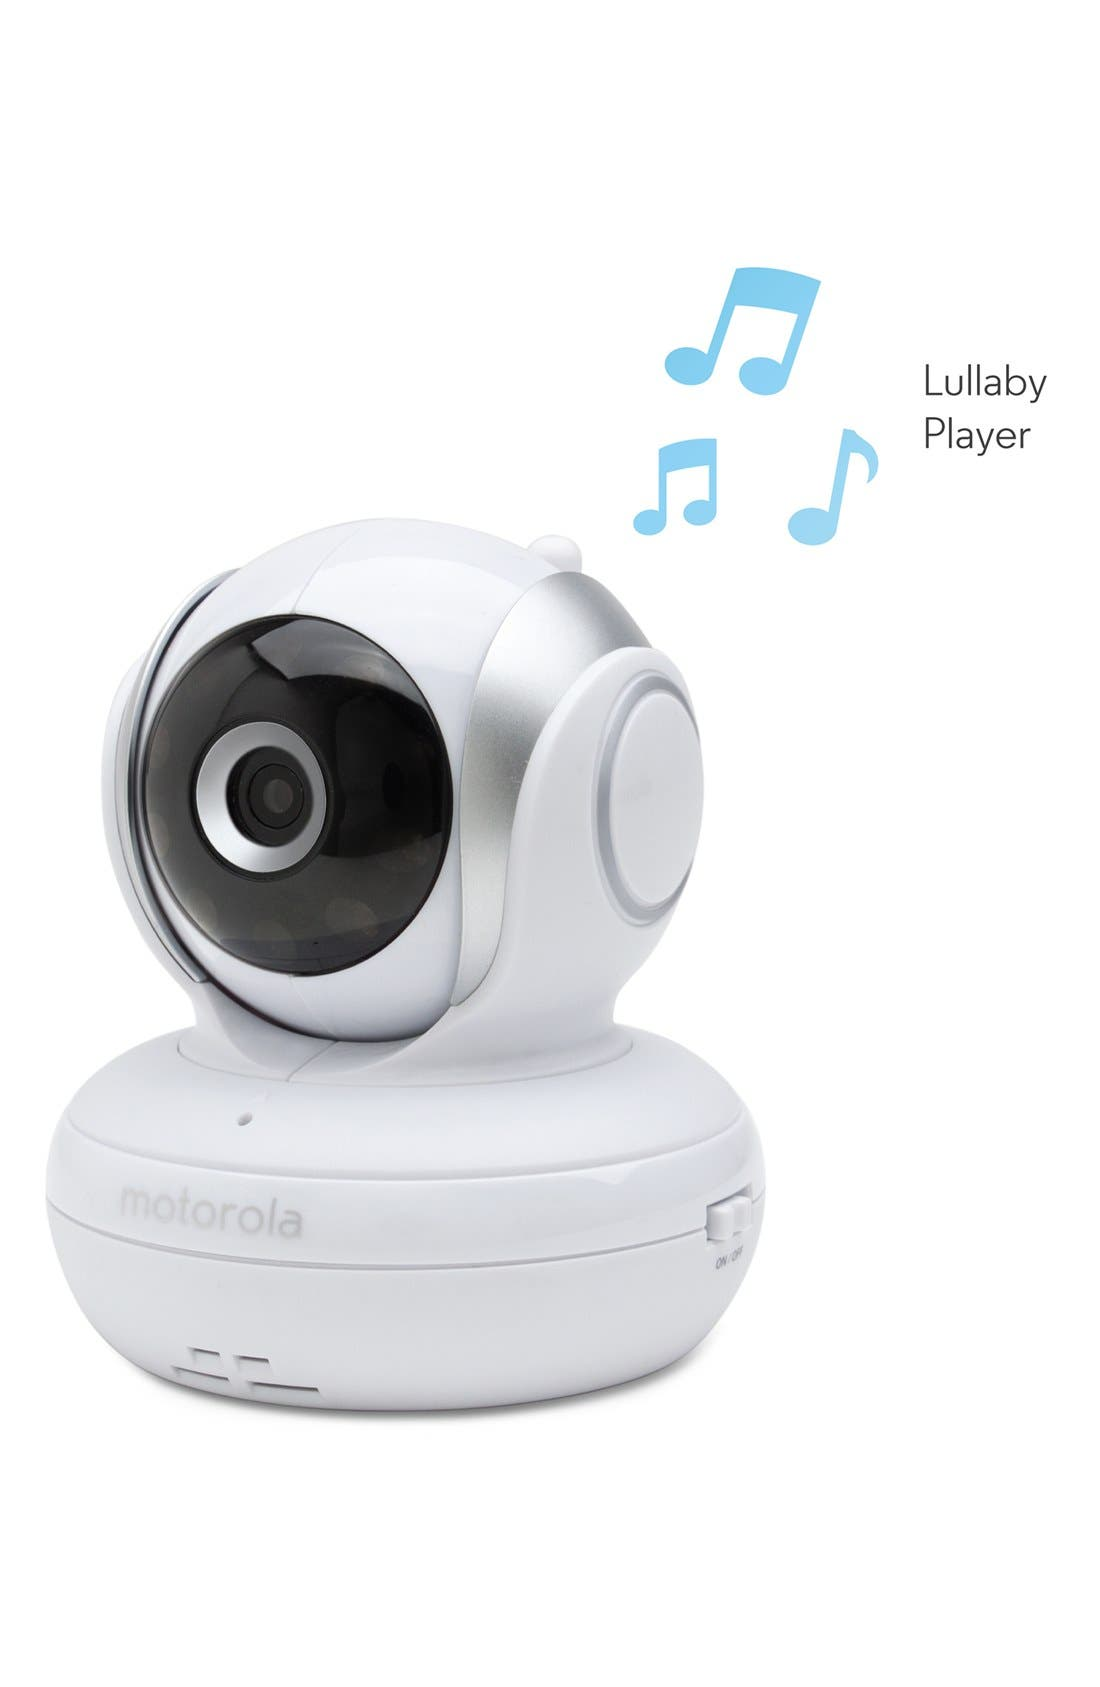 MBP 33S Wireless Digital Video Baby Monitor,                             Alternate thumbnail 2, color,                             WHITE/ SILVER TRIM